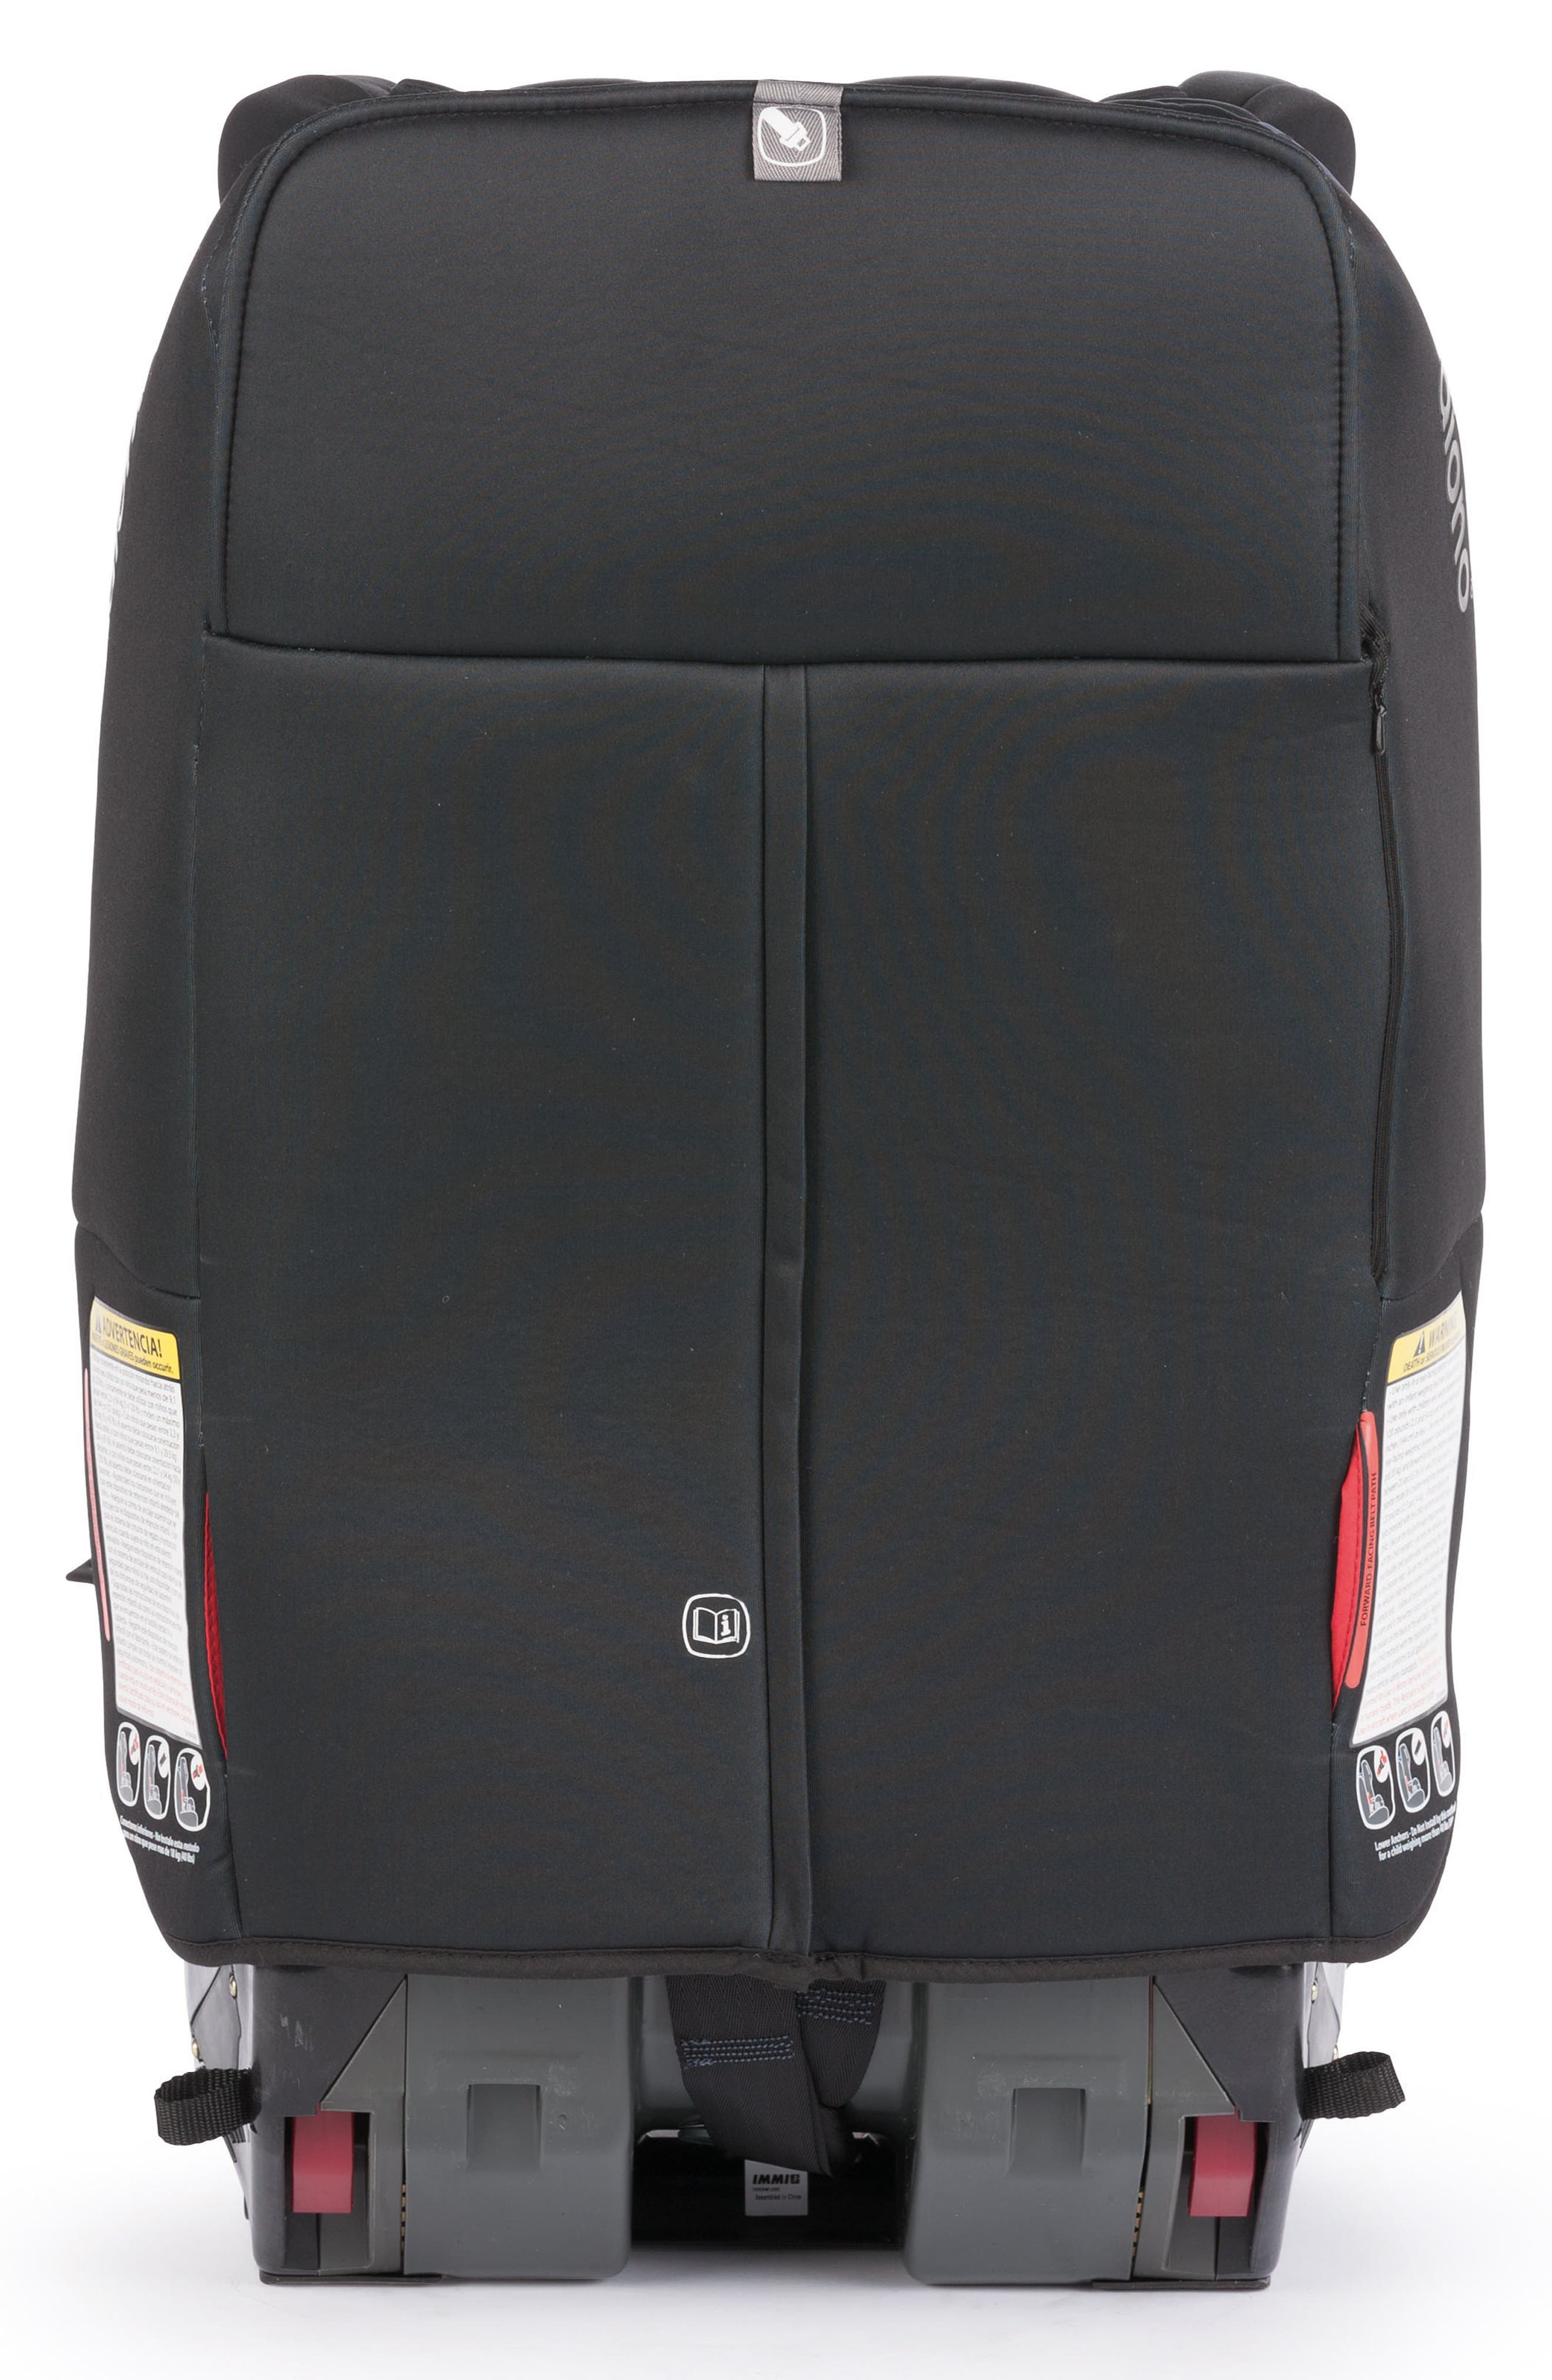 DIONO, radian<sup>®</sup> 3 rXT Rear & Forward Facing Car Seat, Alternate thumbnail 2, color, BLACK